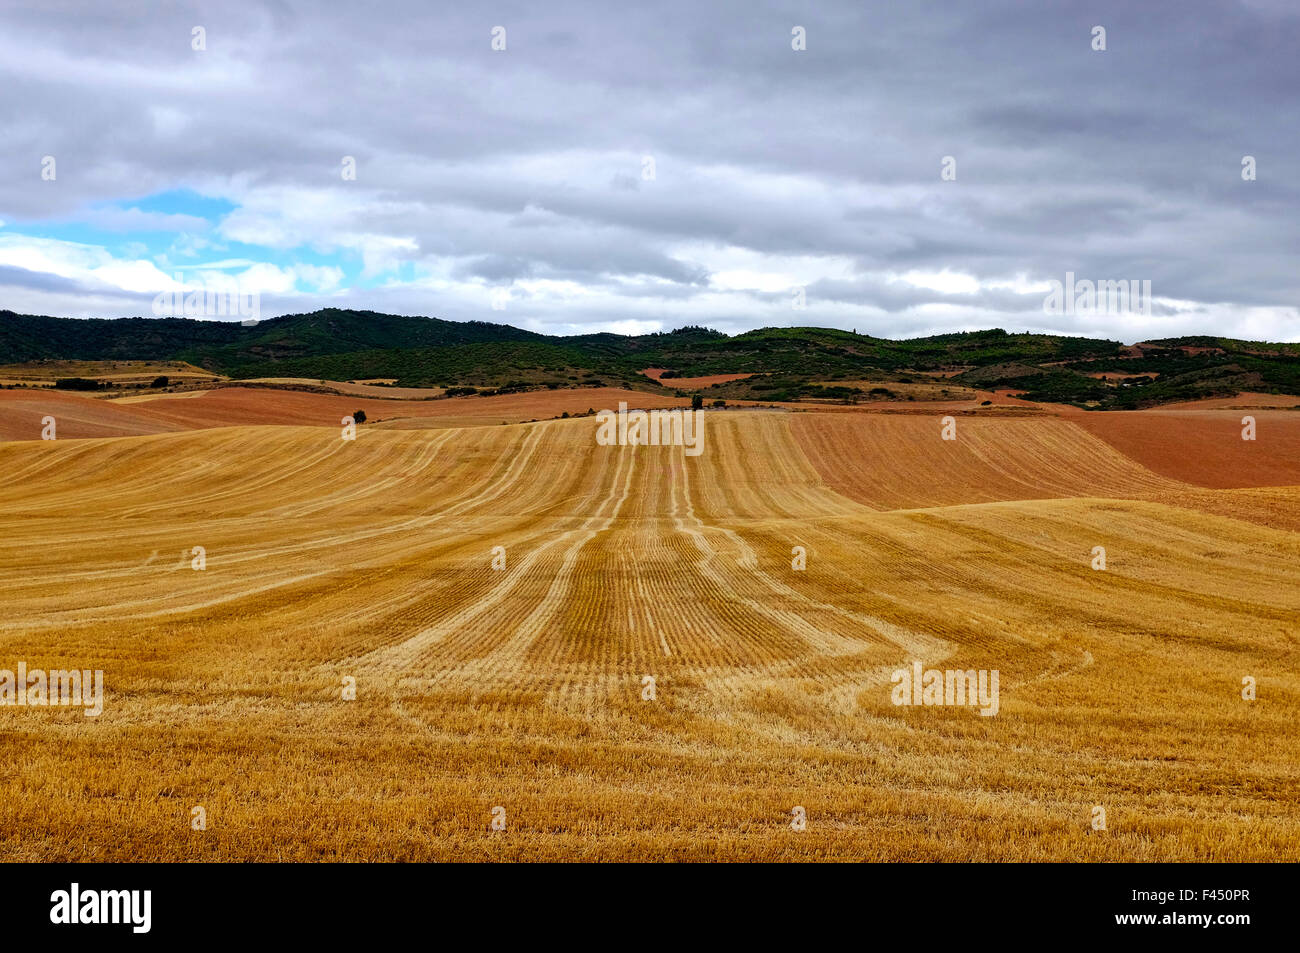 Harvested wheat fields on the Way of Saint James (Camino de Santiago) before Los Arcos,Navarre, Spain - Stock Image